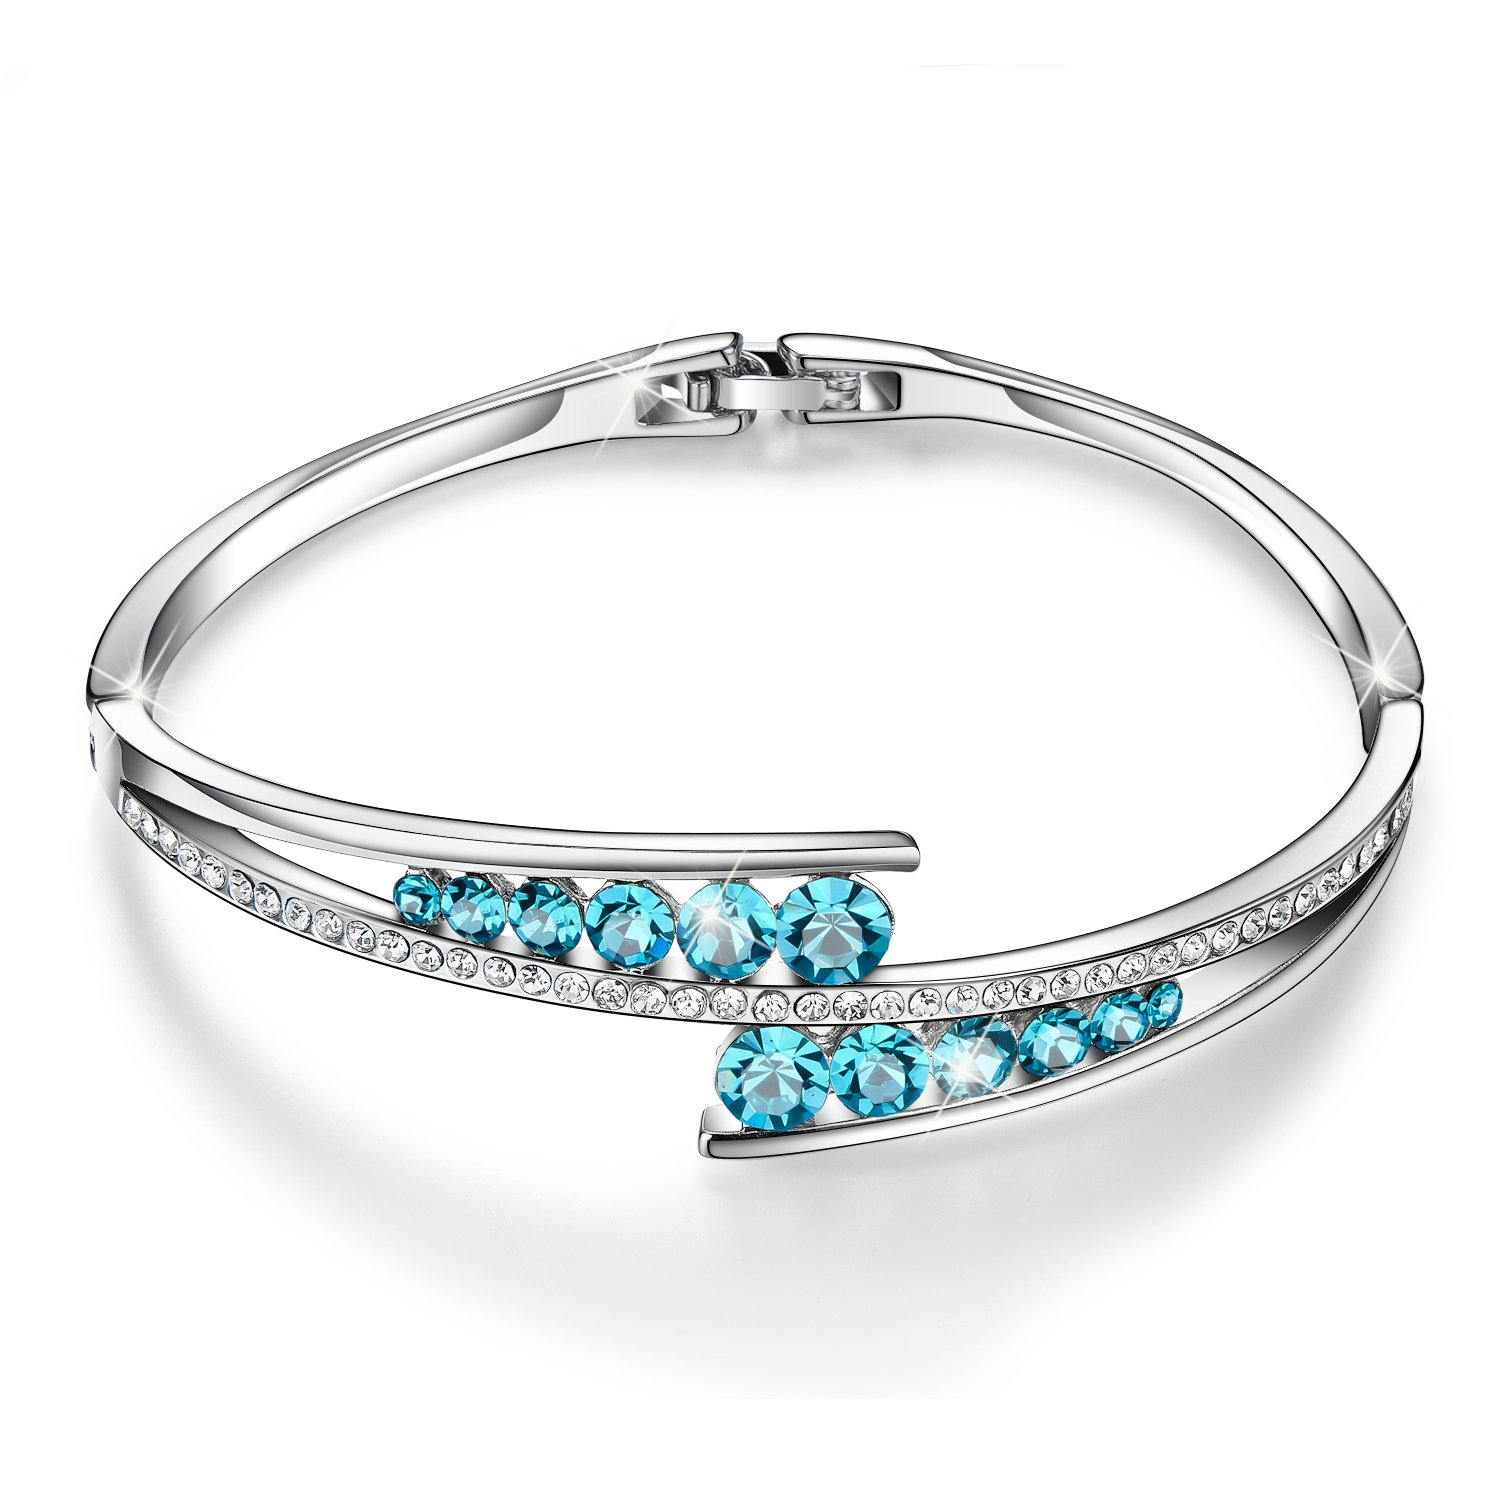 Menton Ezil ''Love Encounter Sapphire Blue Swarovski Bracelets Woman Bangle 7'' Charm Tennis Jewelry